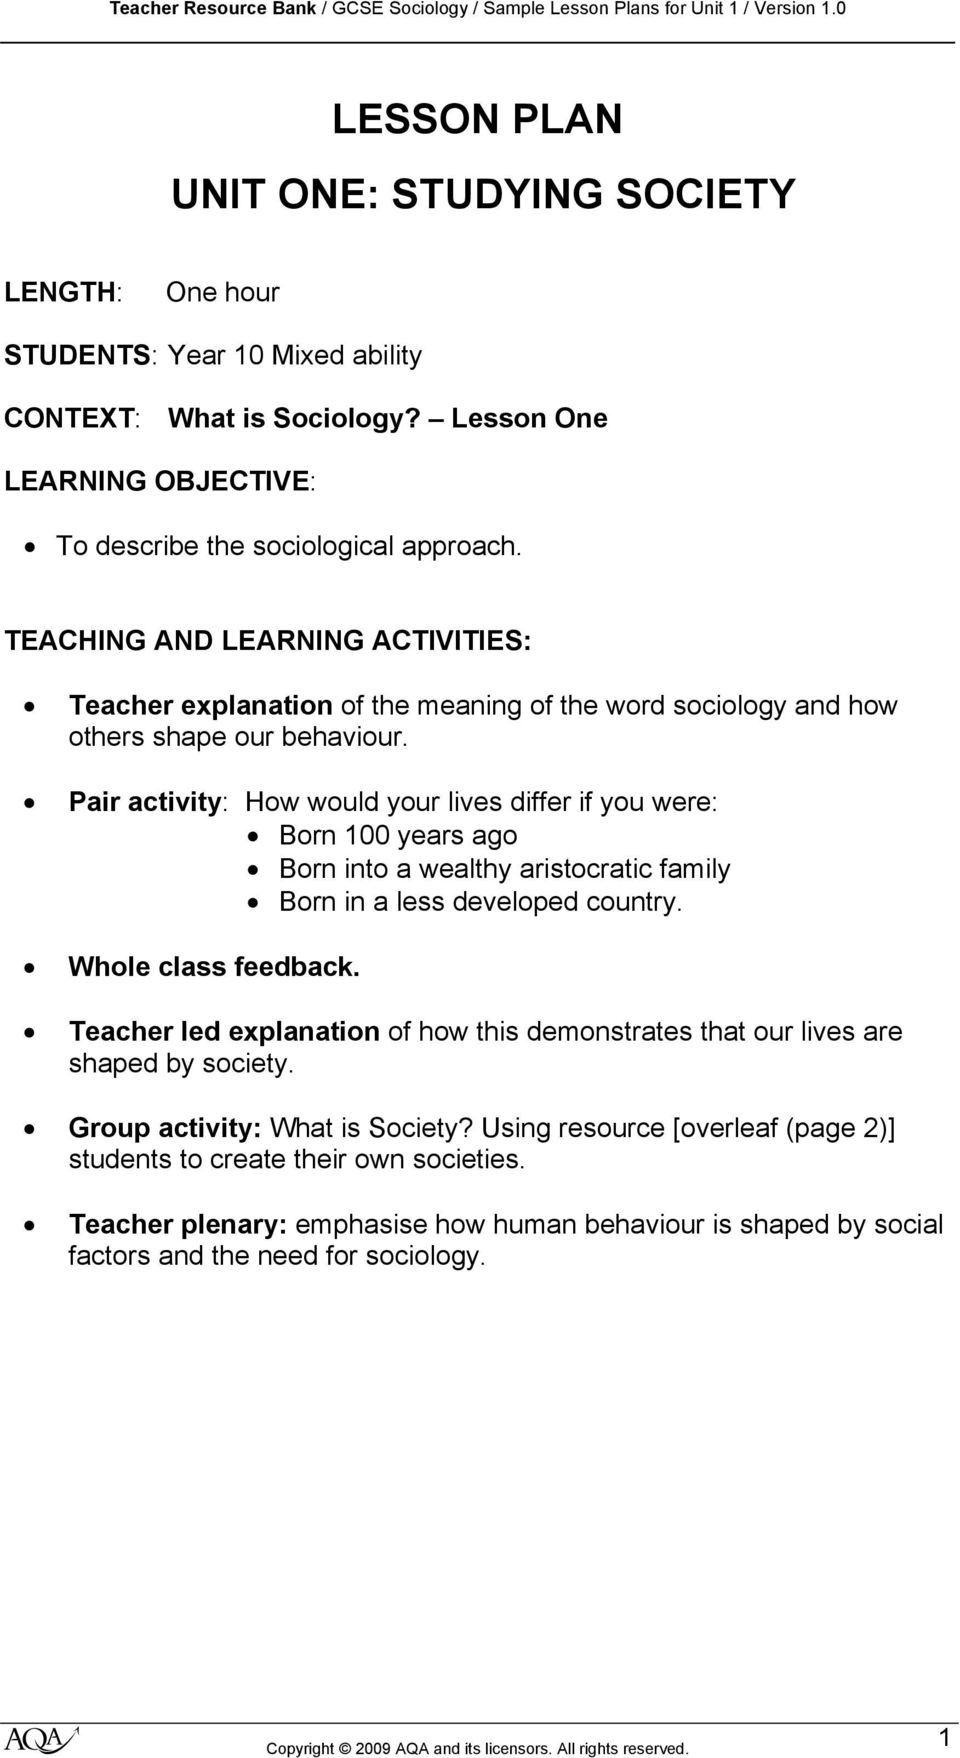 Sociology Worksheets High School Gcse sociology Sample Lesson Plans for Unit 1 Studying